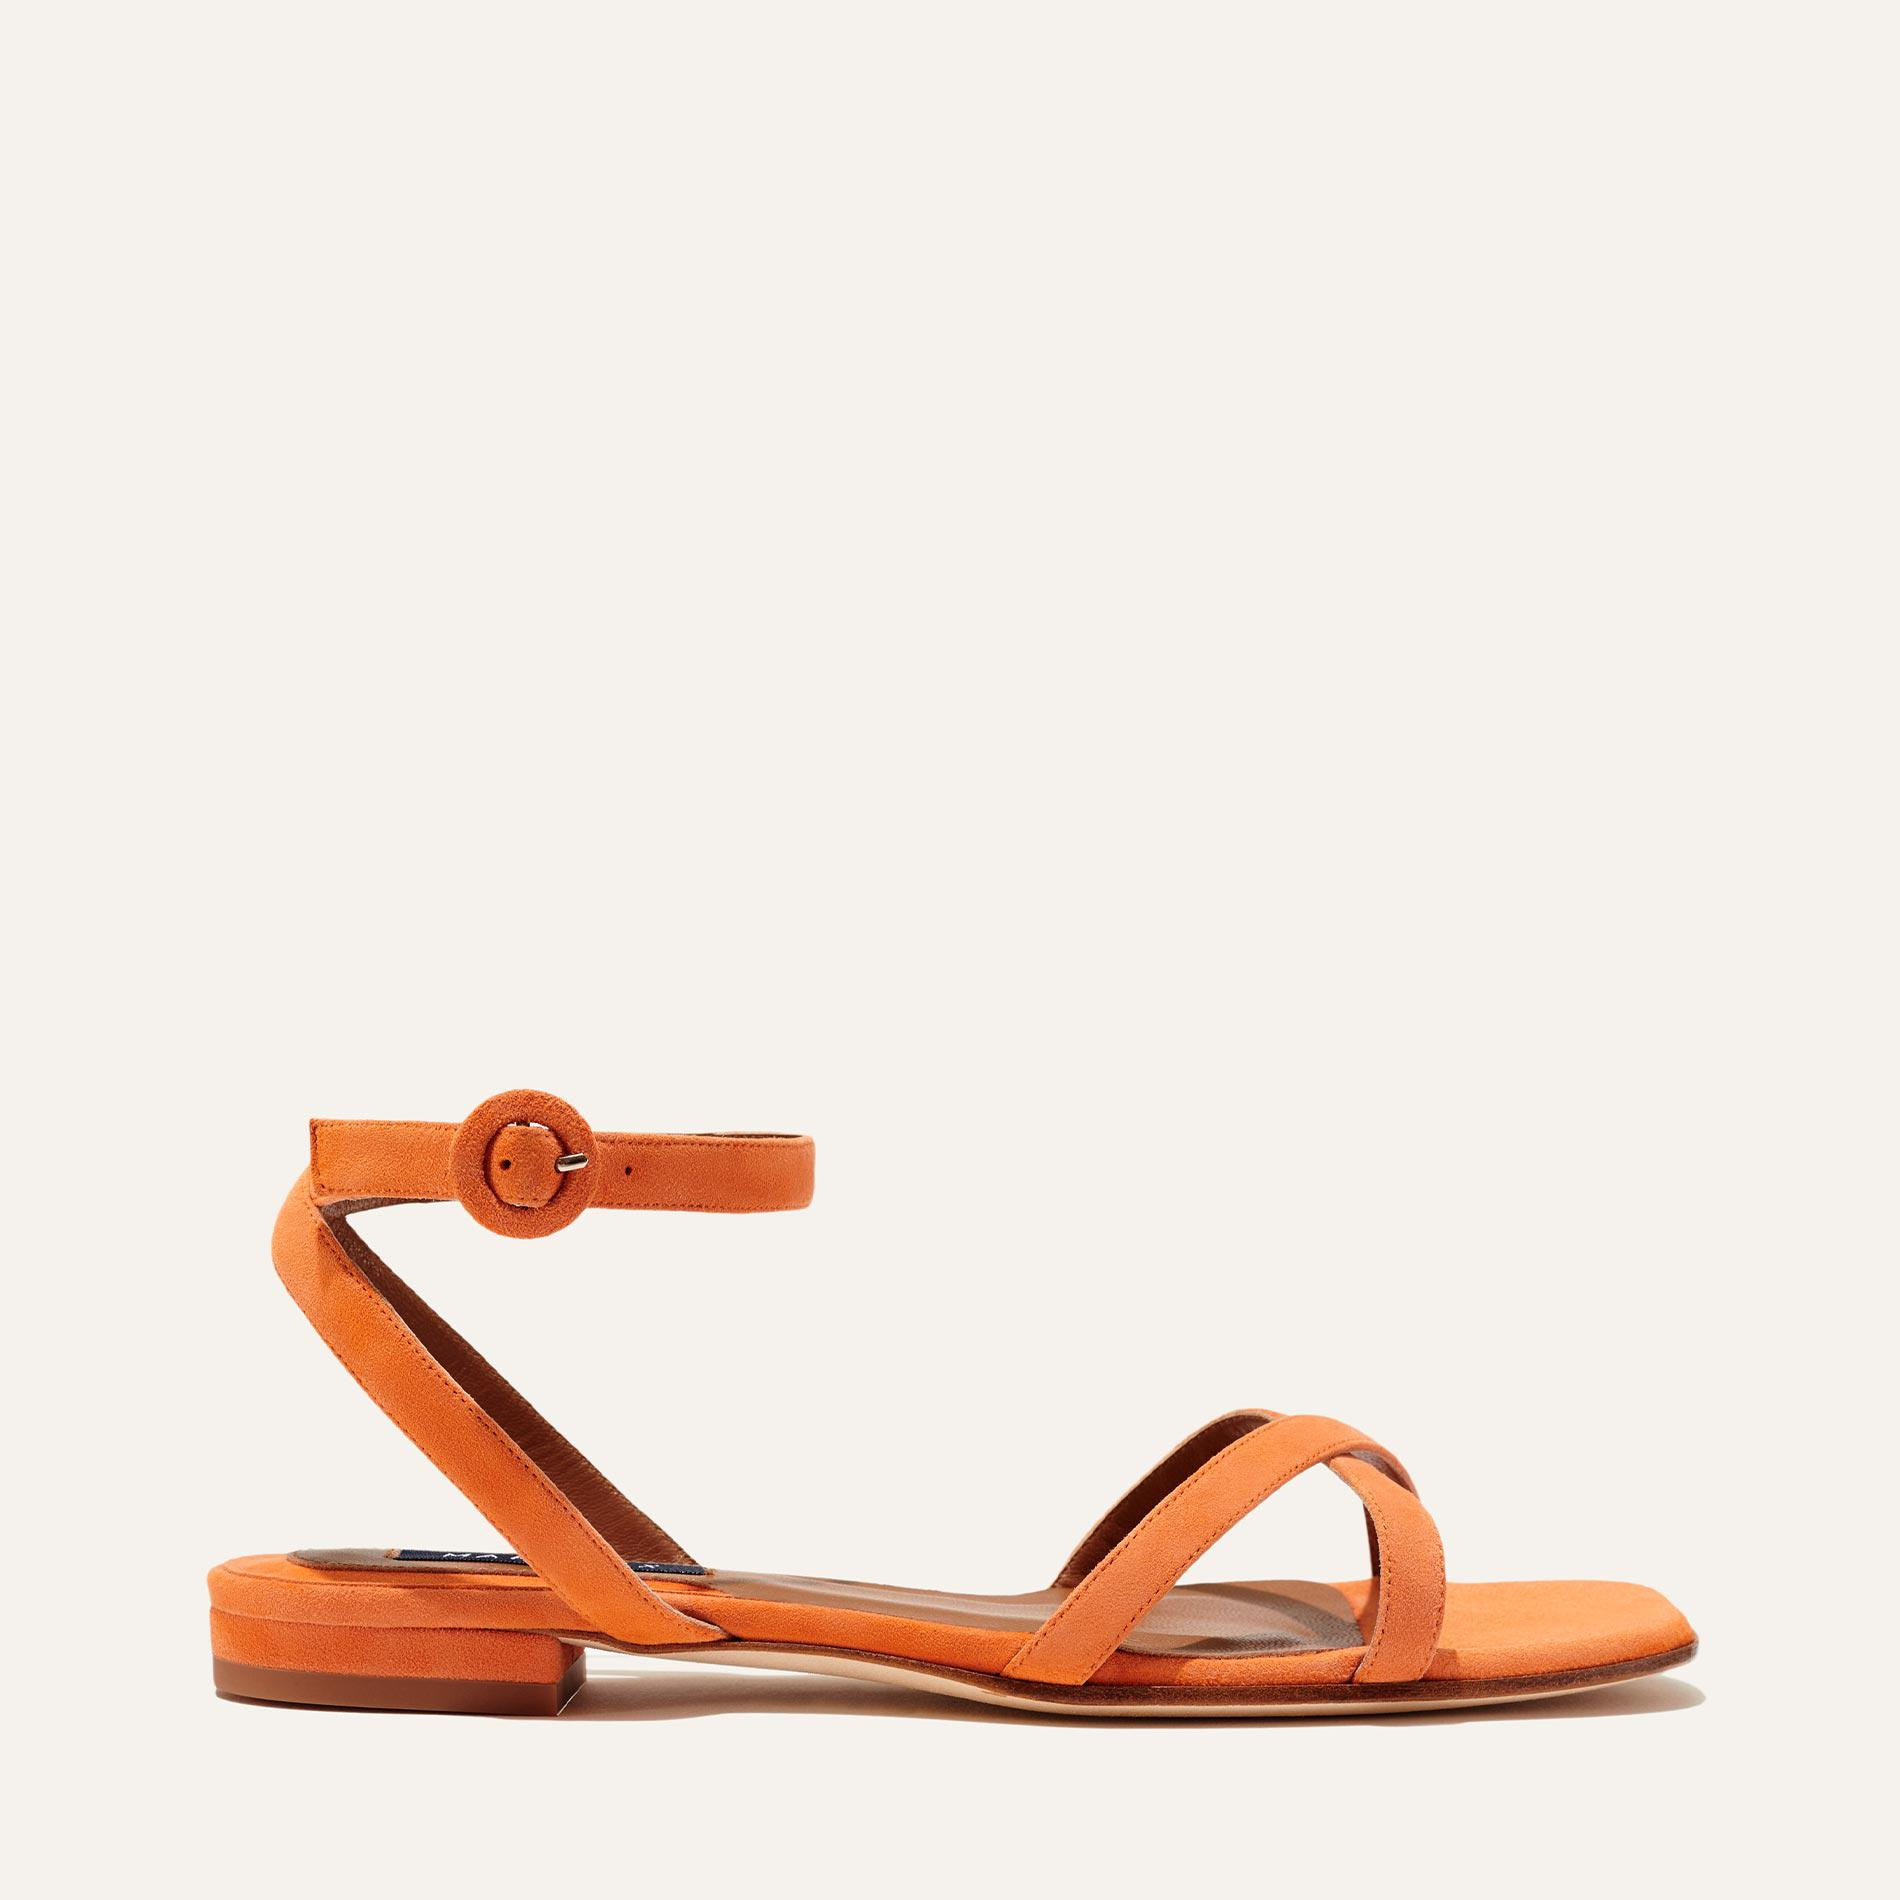 The Flat Sandal - Apricot Suede